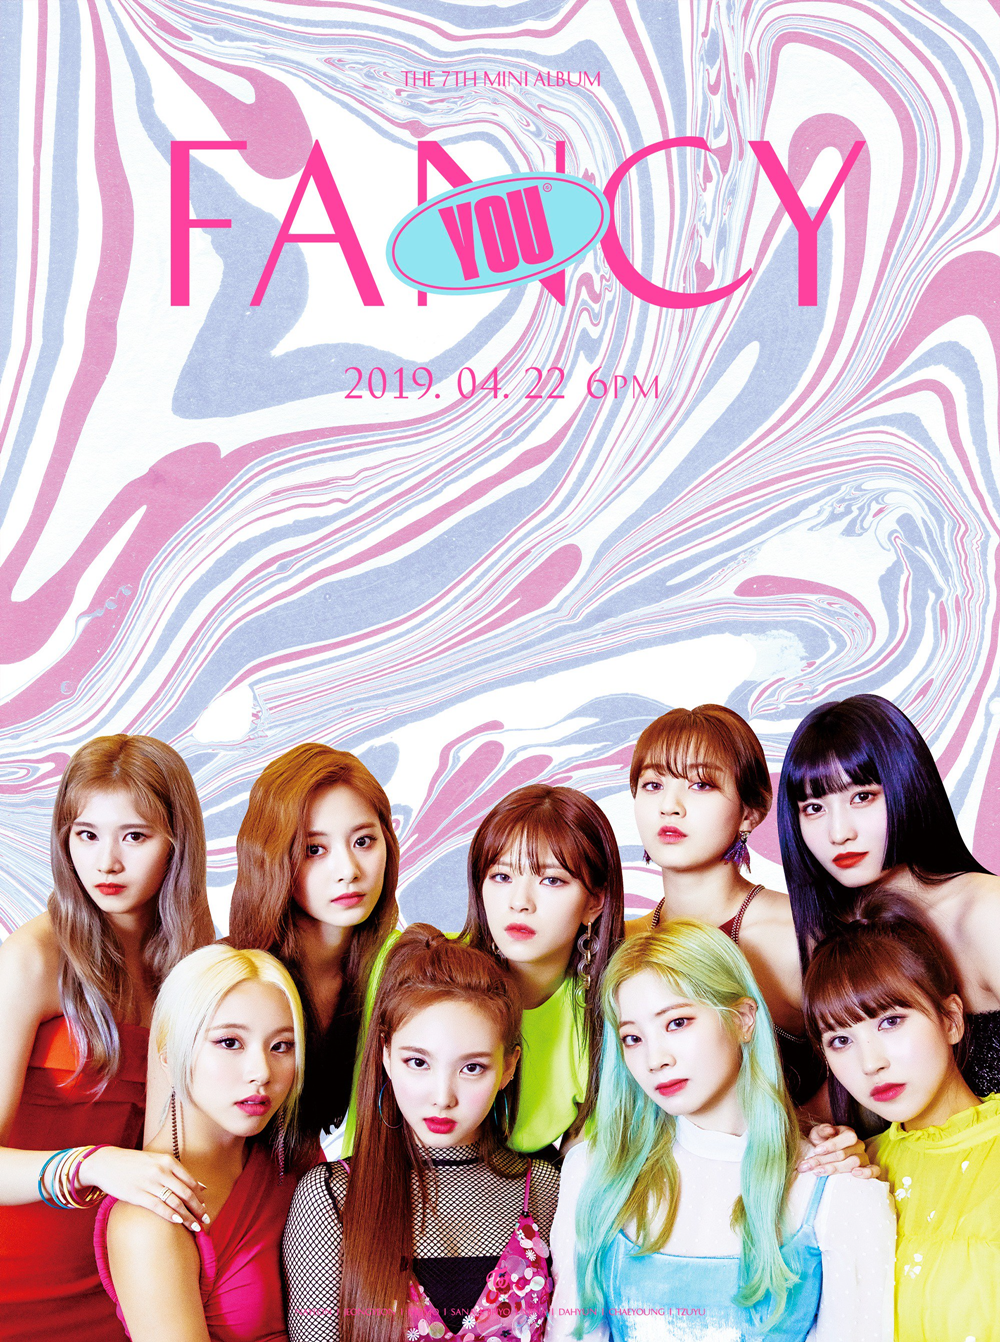 TWICE Fancy You group teaser poster 2.png